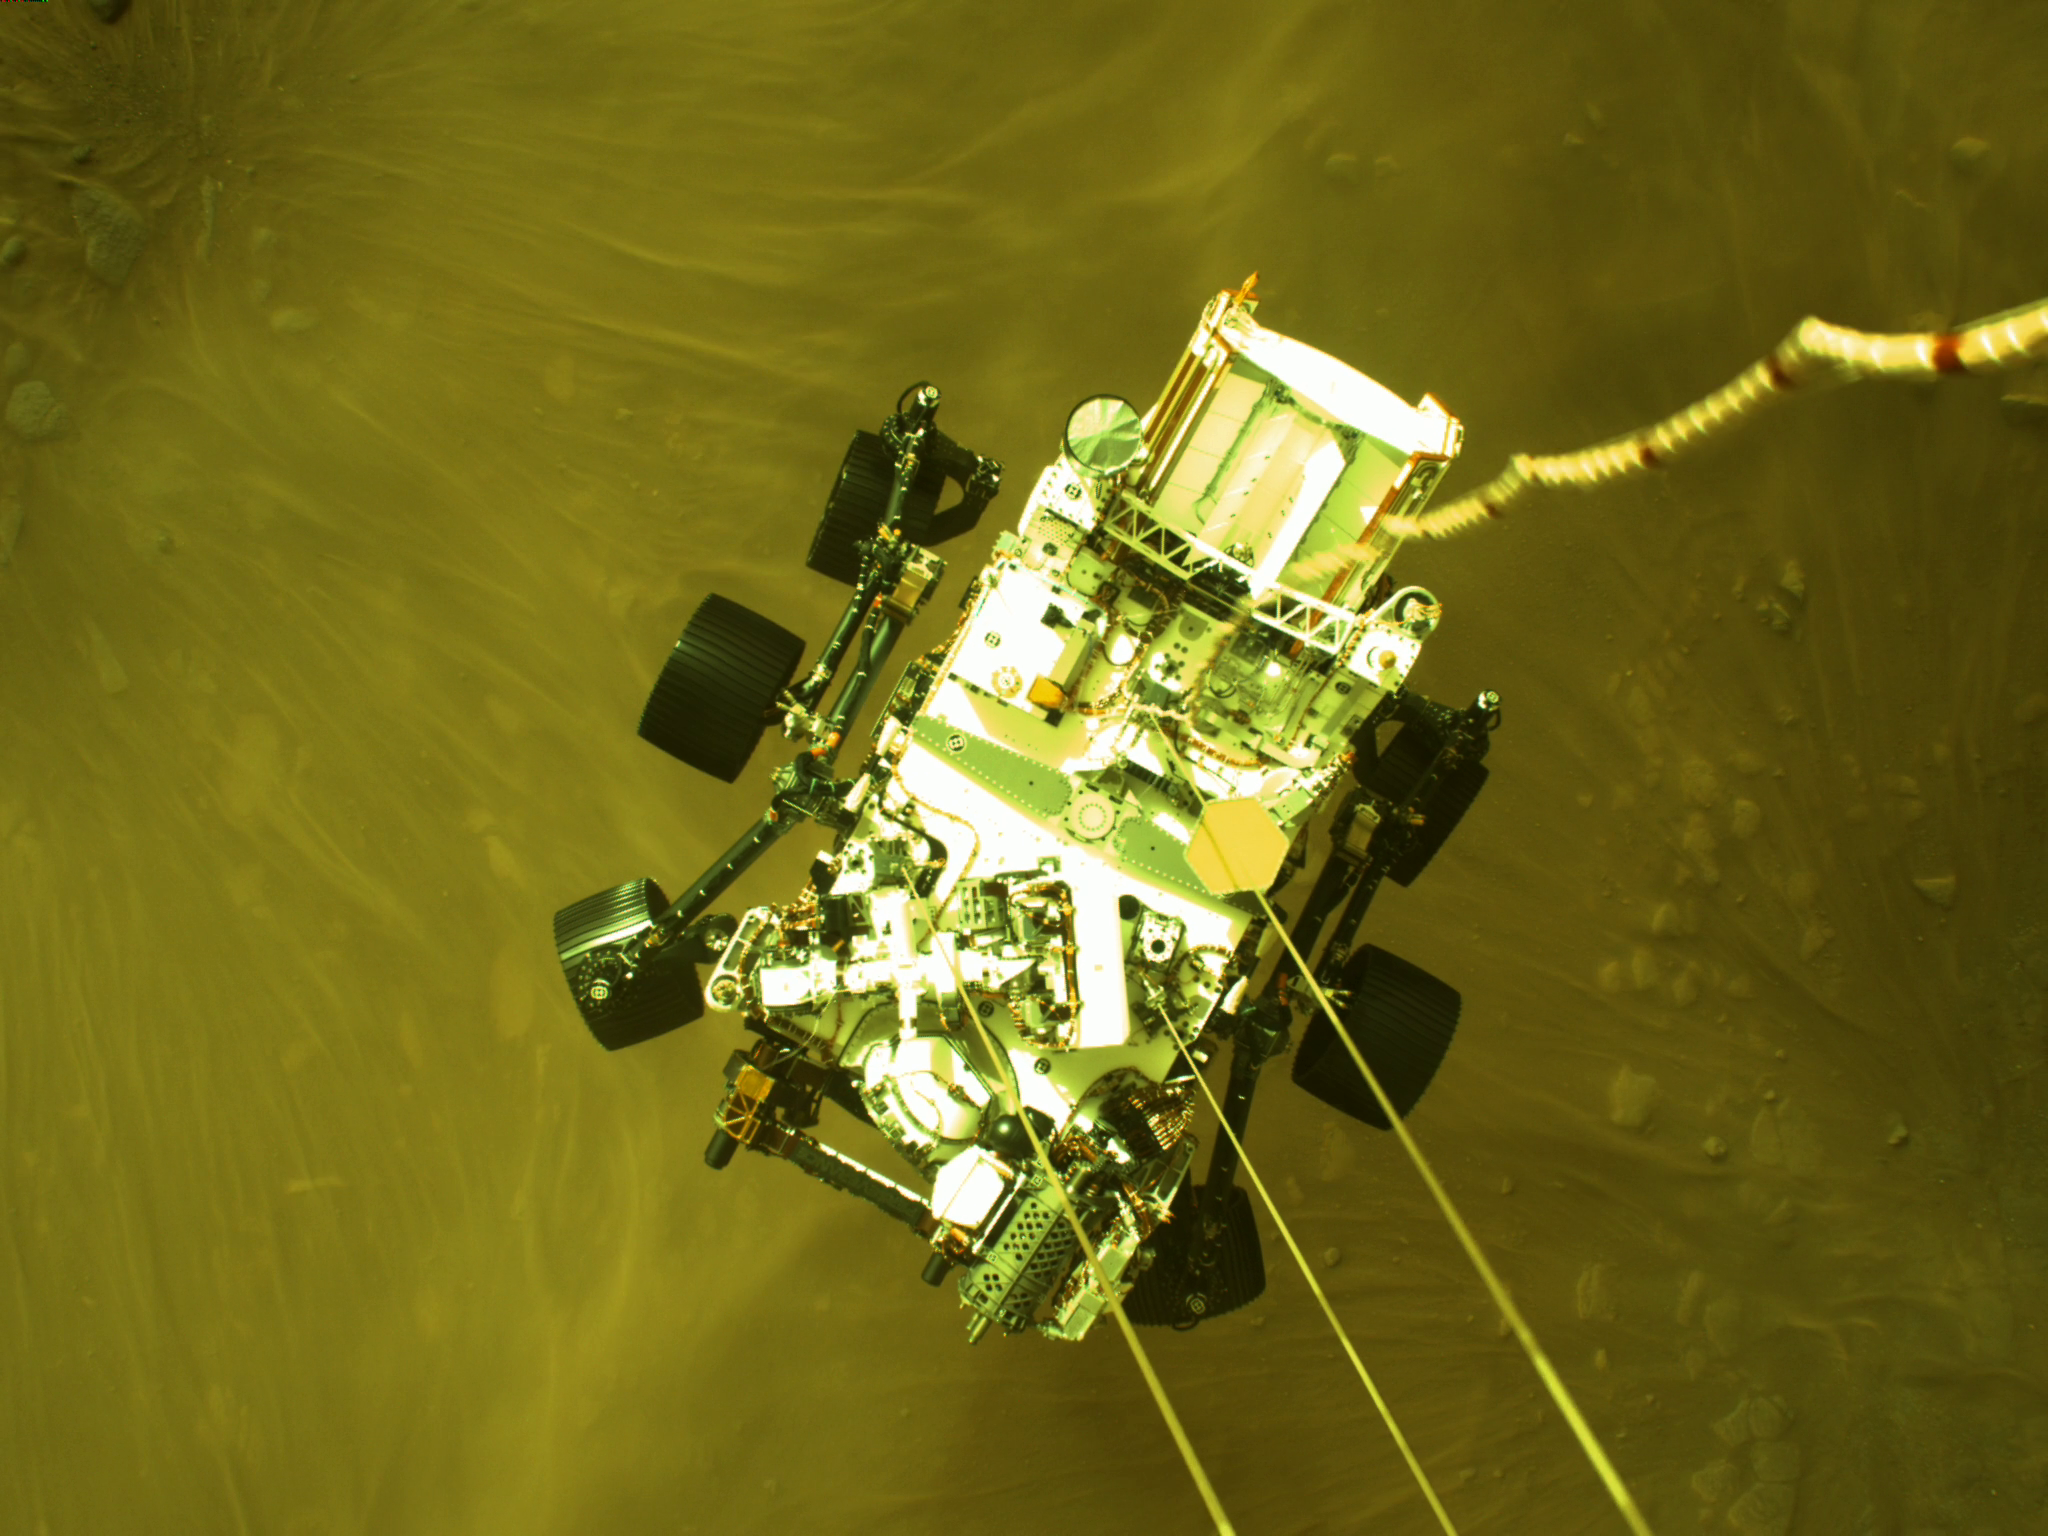 <p>The Mars 2020 rover is set to make its way to the Red Planet in 2020.&nbsp;</p>